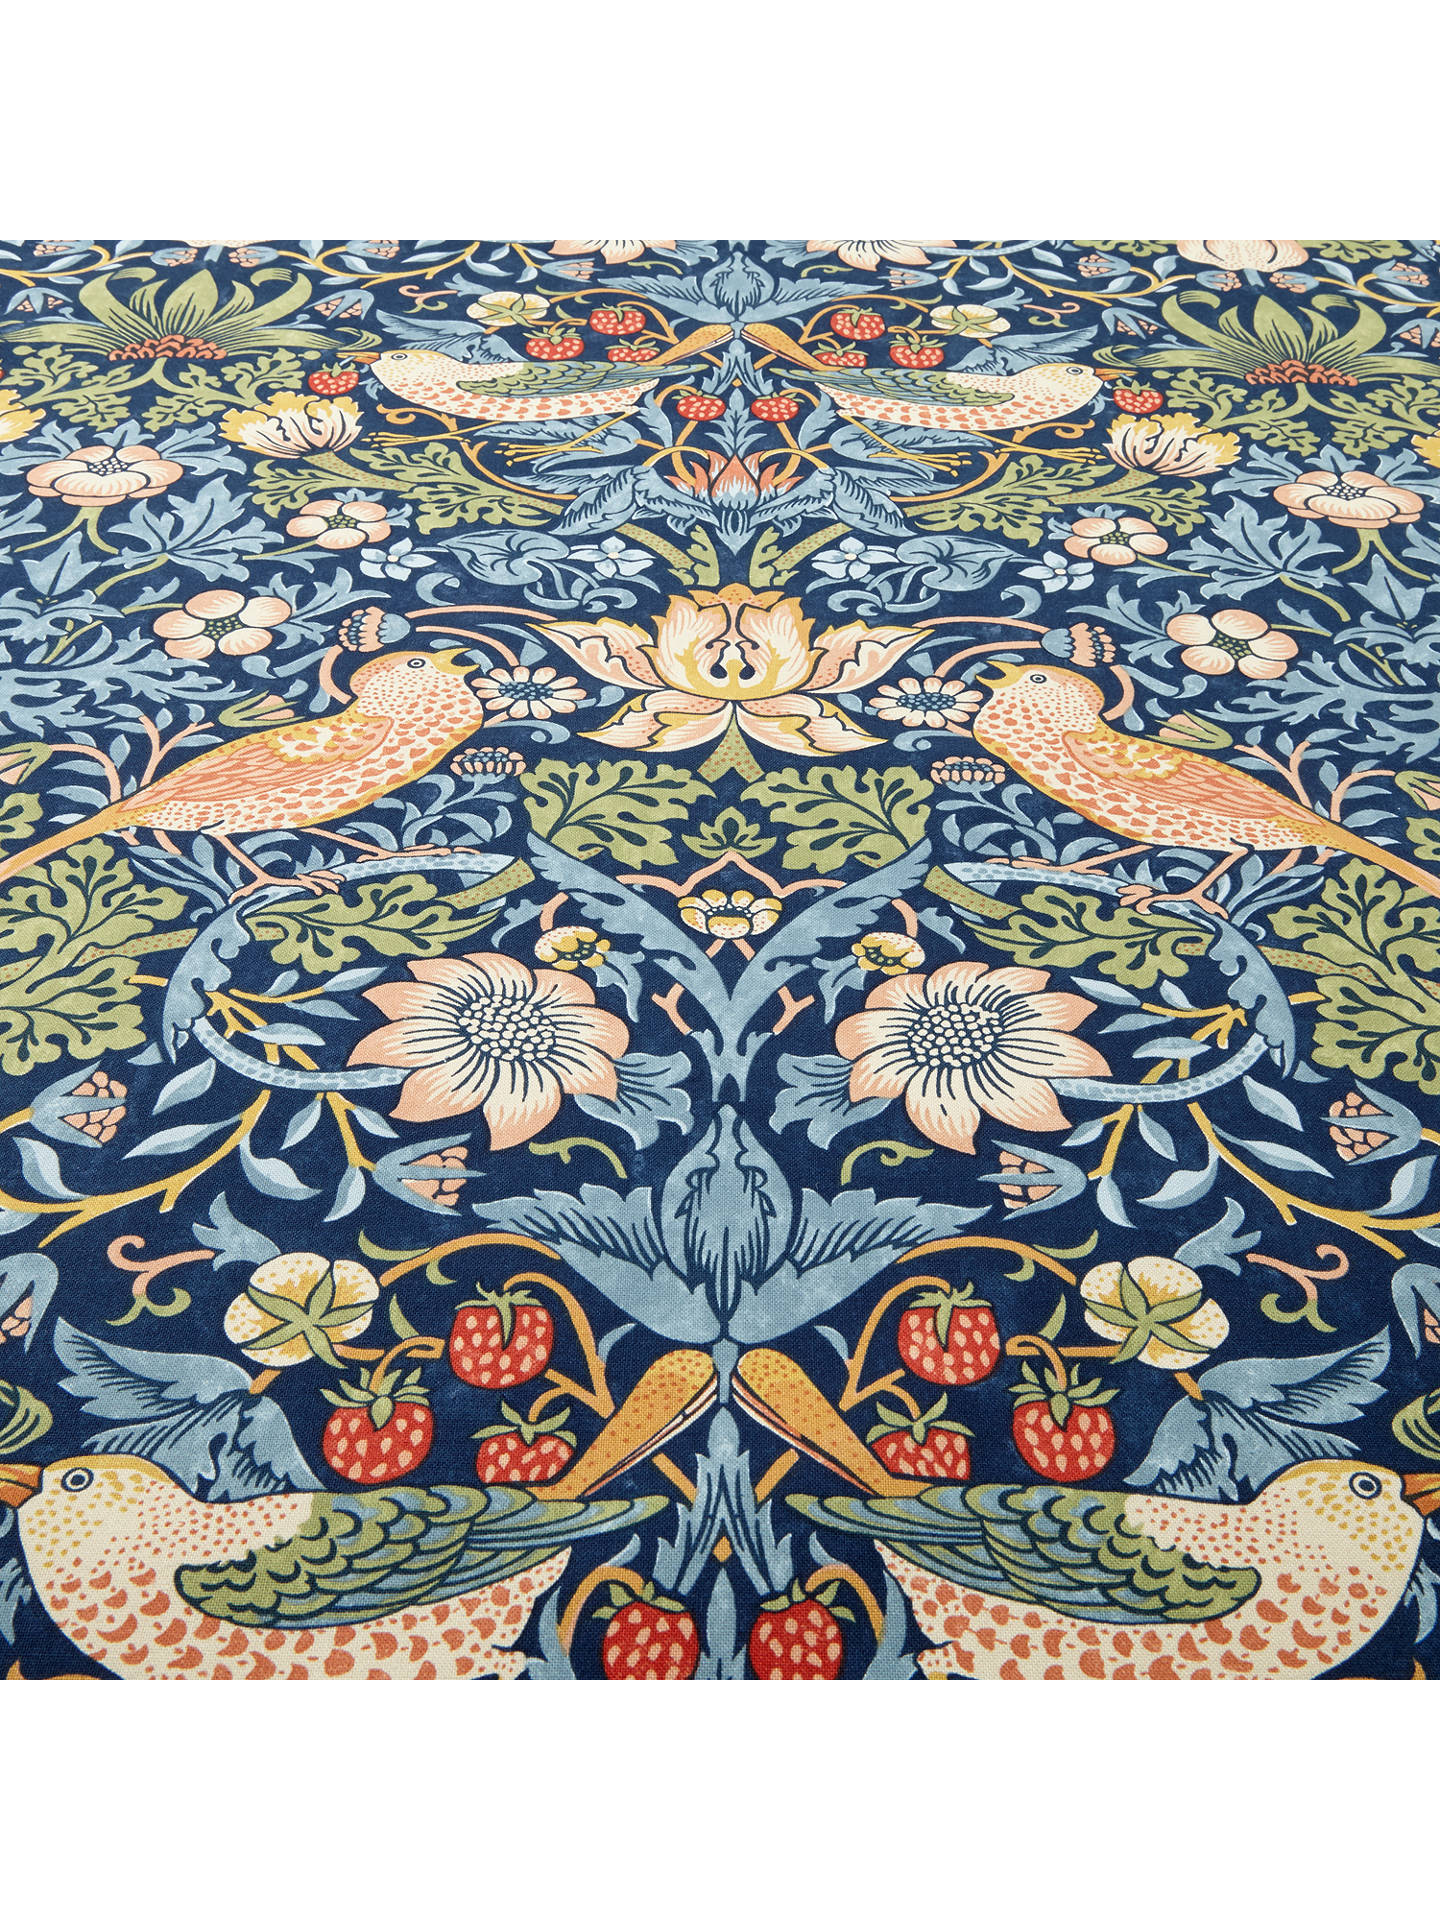 Buy Morris & Co. Strawberry Thief Furnishing Fabric, Indigo Online at johnlewis.com